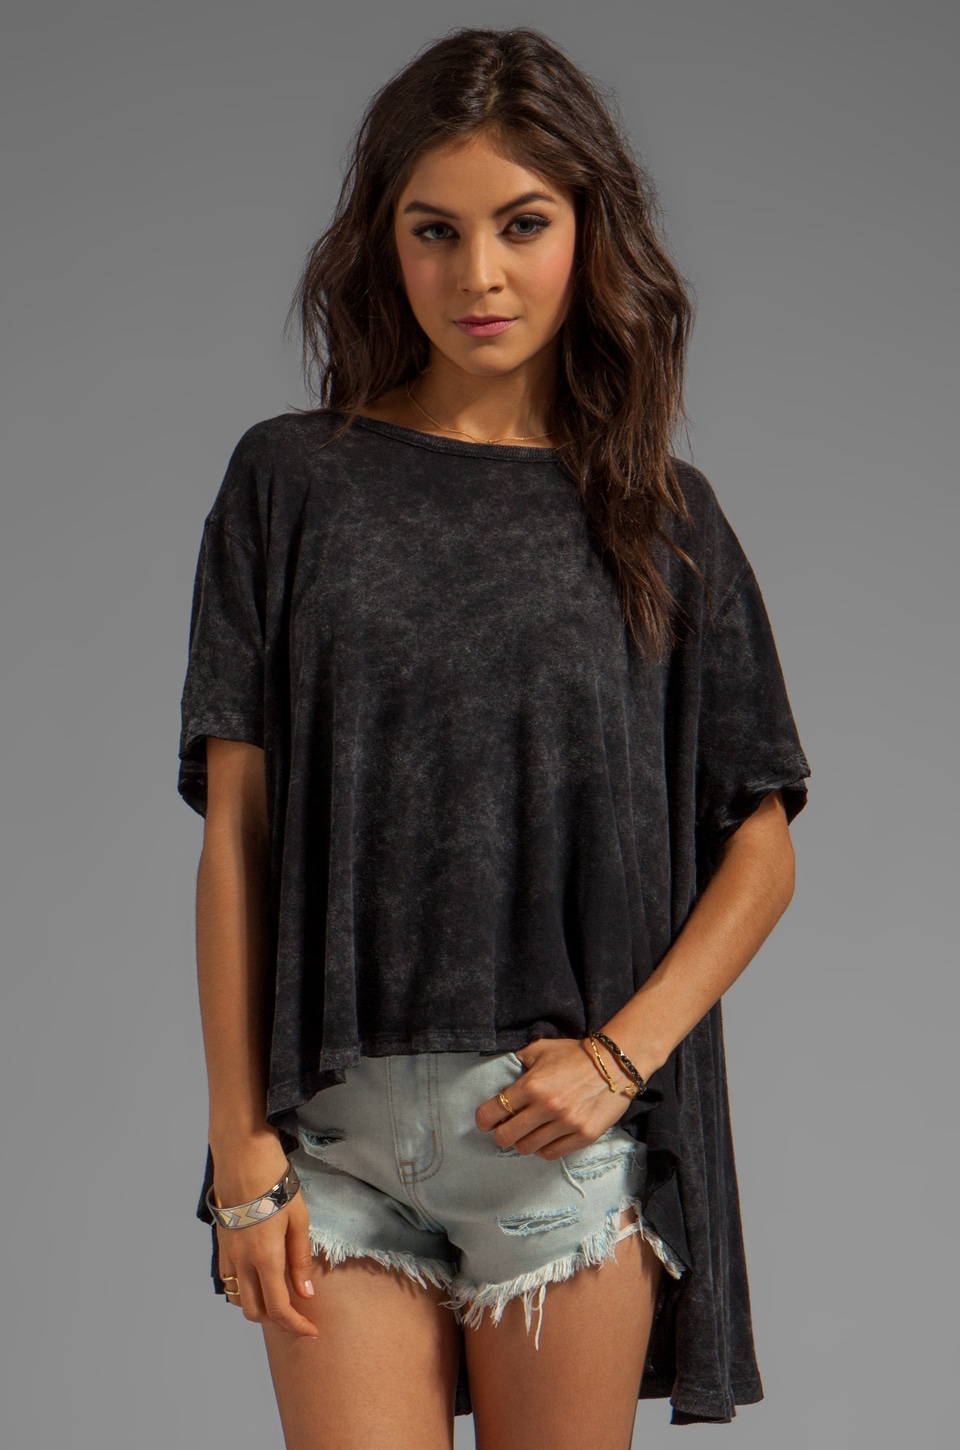 Free People Circle in the Sand Tee in Black